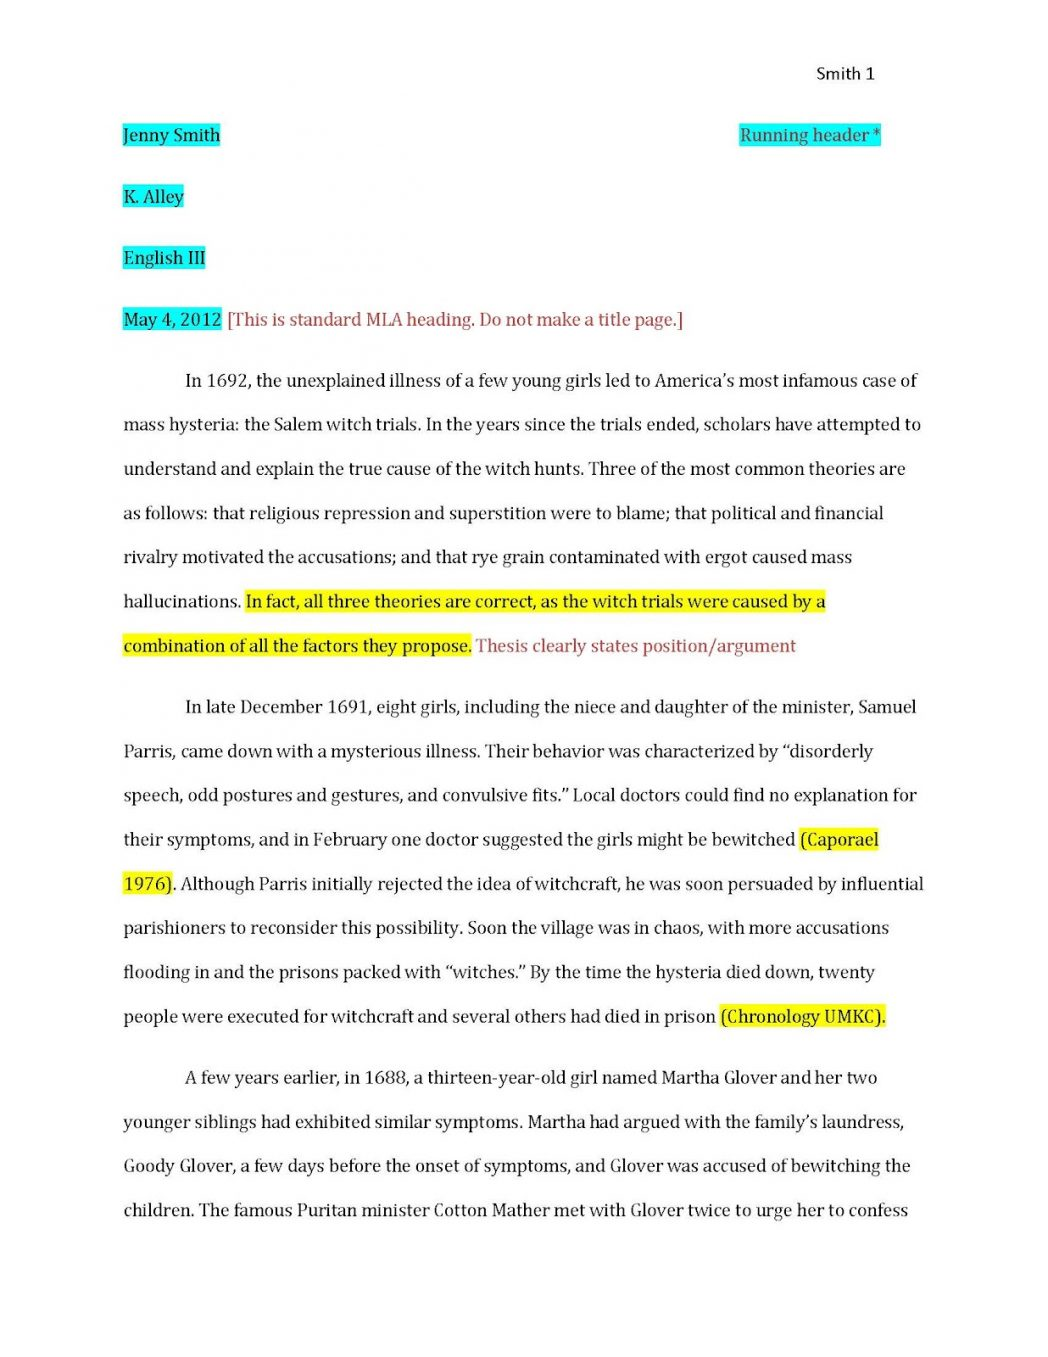 002 Mla Format Essay Generator Author Date References System Ready Set Automaticpaper P 1048x1357 Wondrous Paper Software Download Title Reddit Free Full